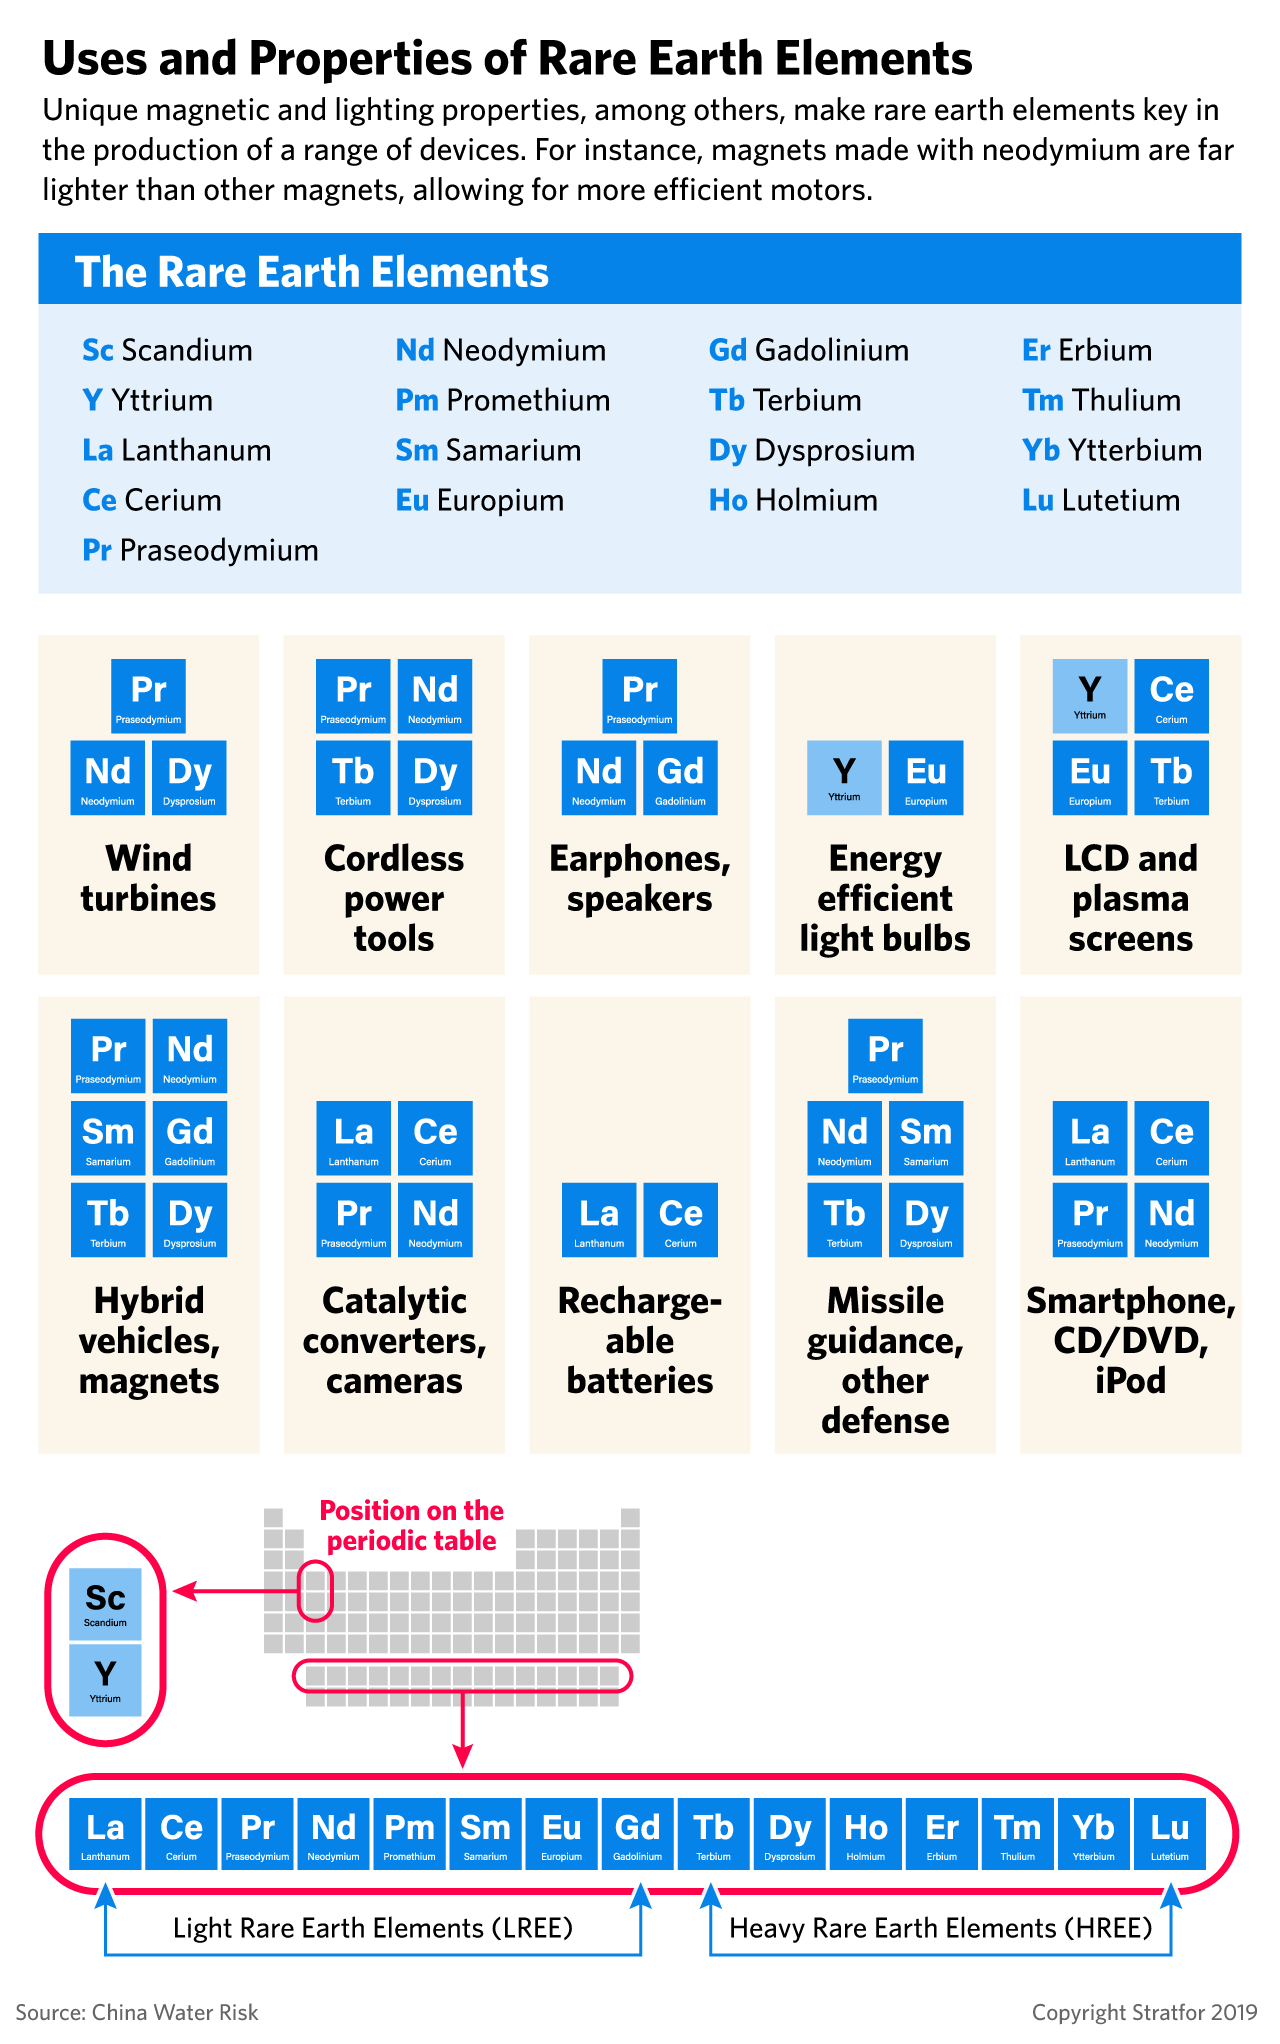 A graphic showing the uses and properties of rare earth elements.